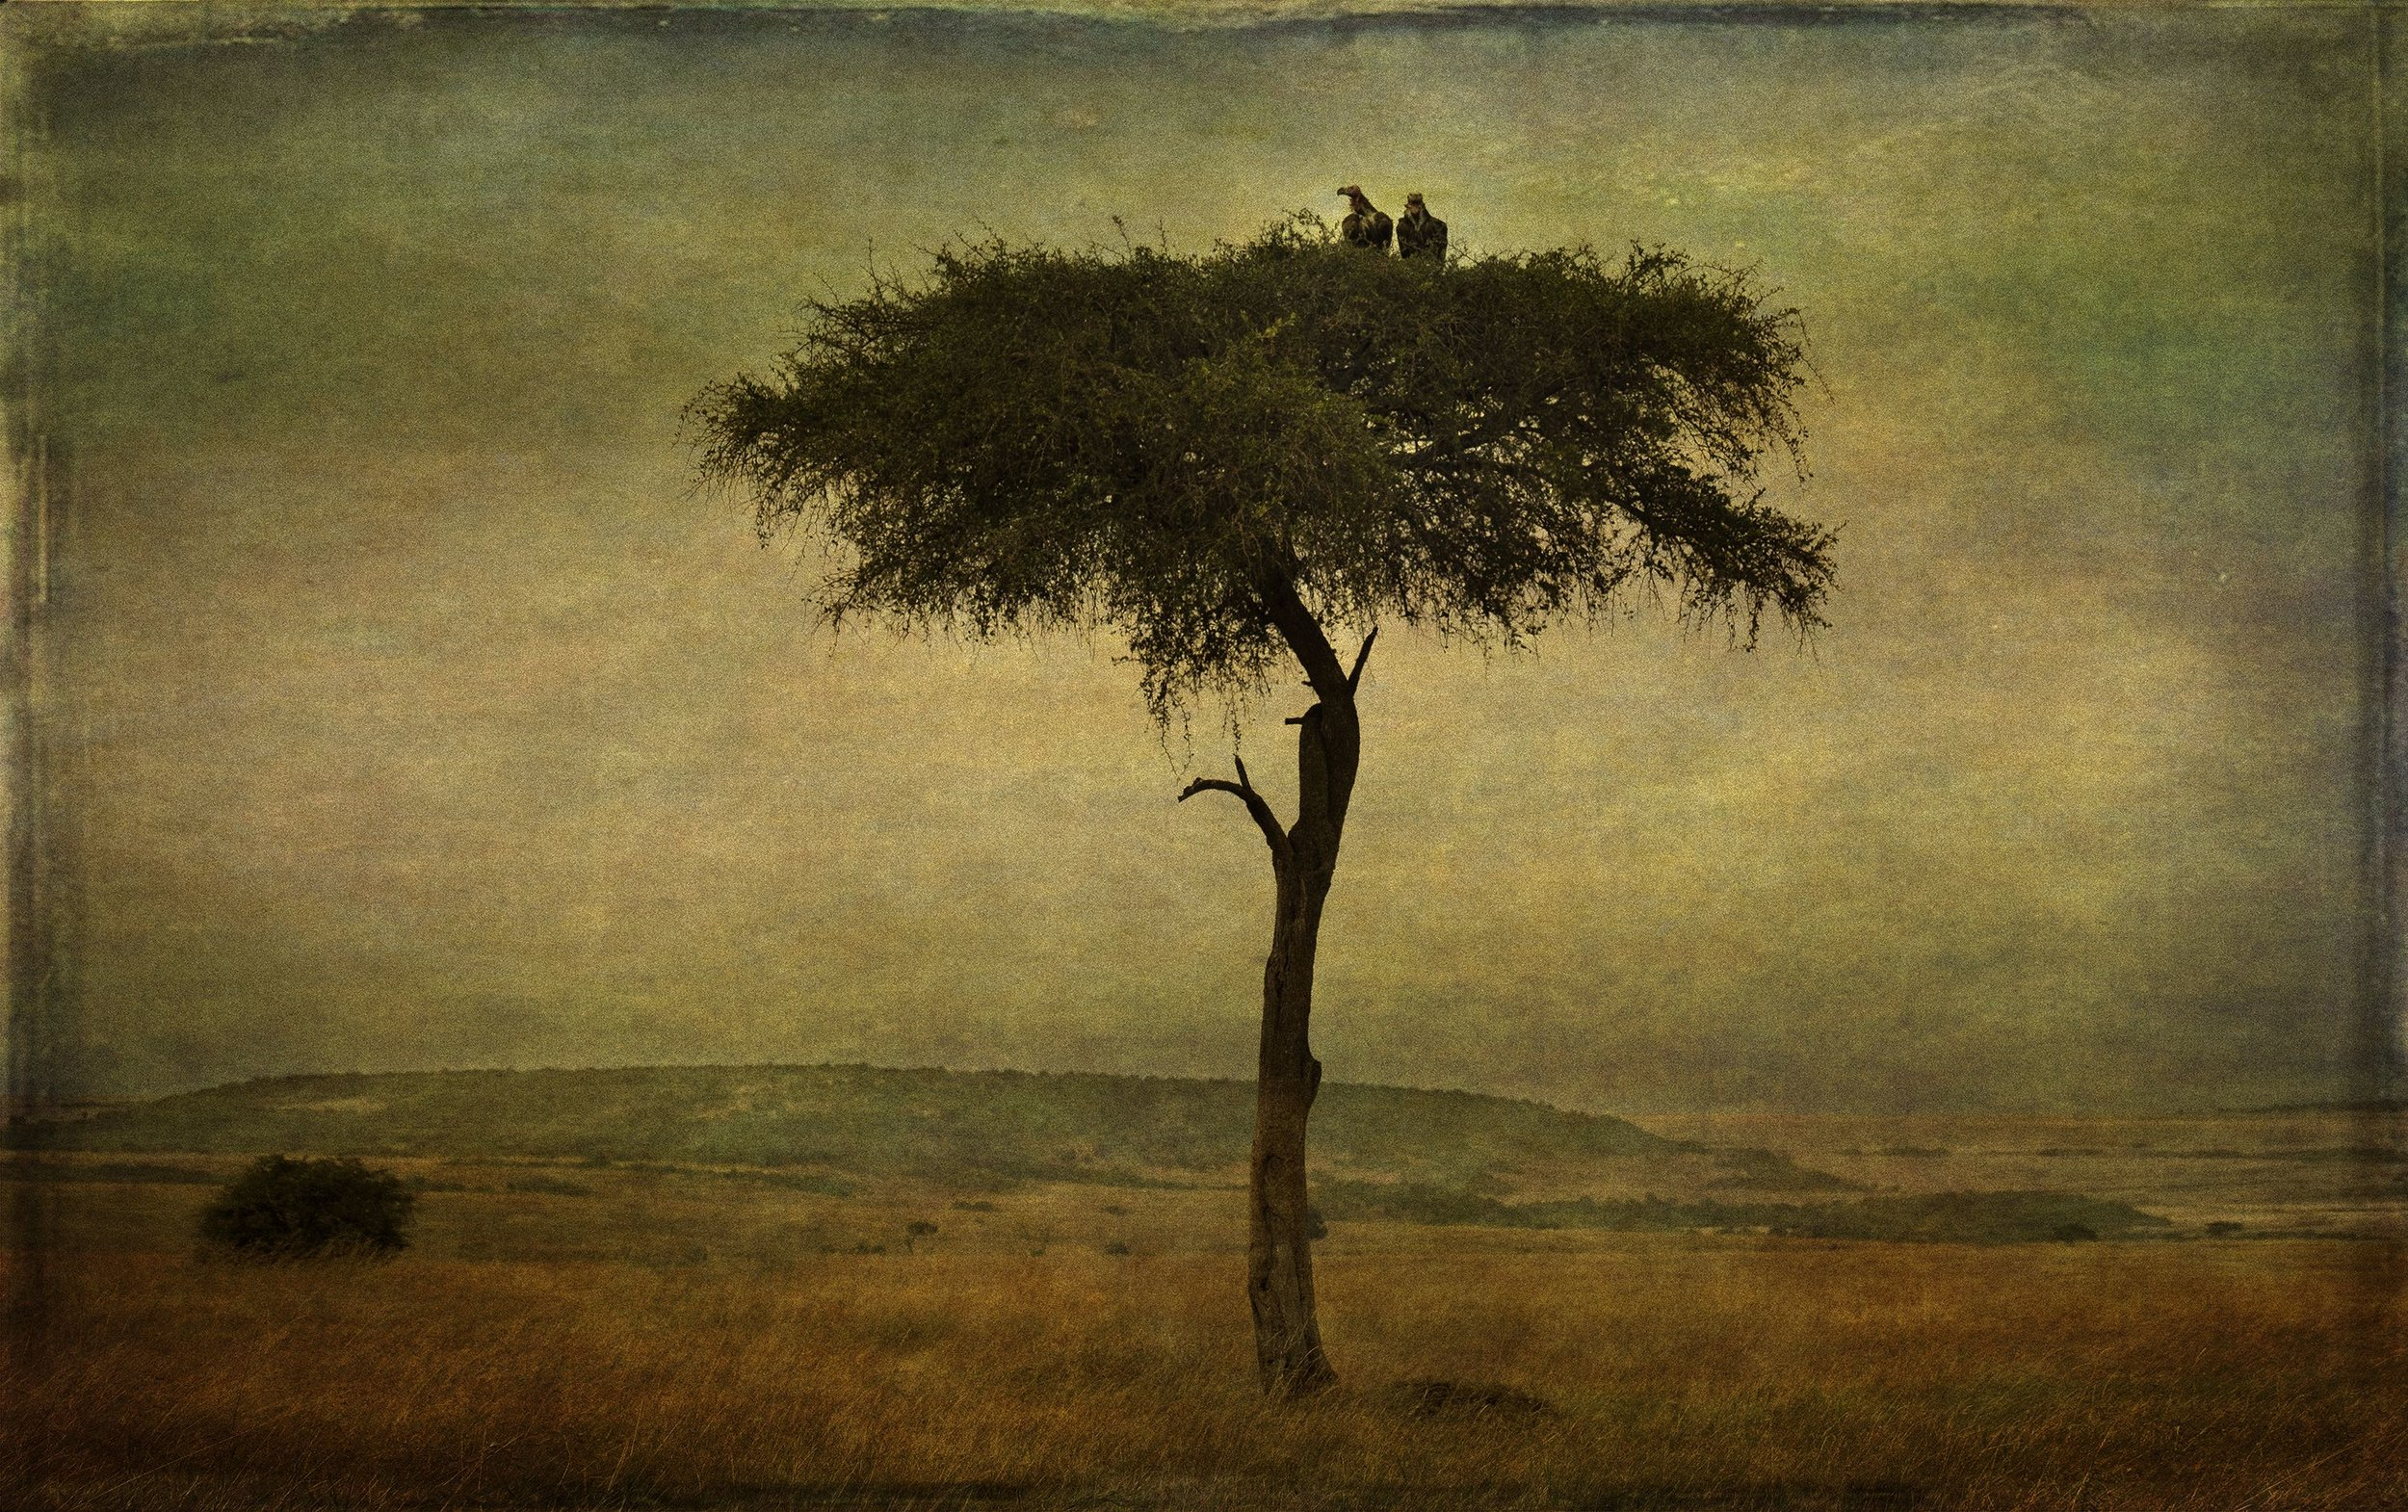 """Vultures in Tree,'"" by PenRod Studios, All Rights Reserved"